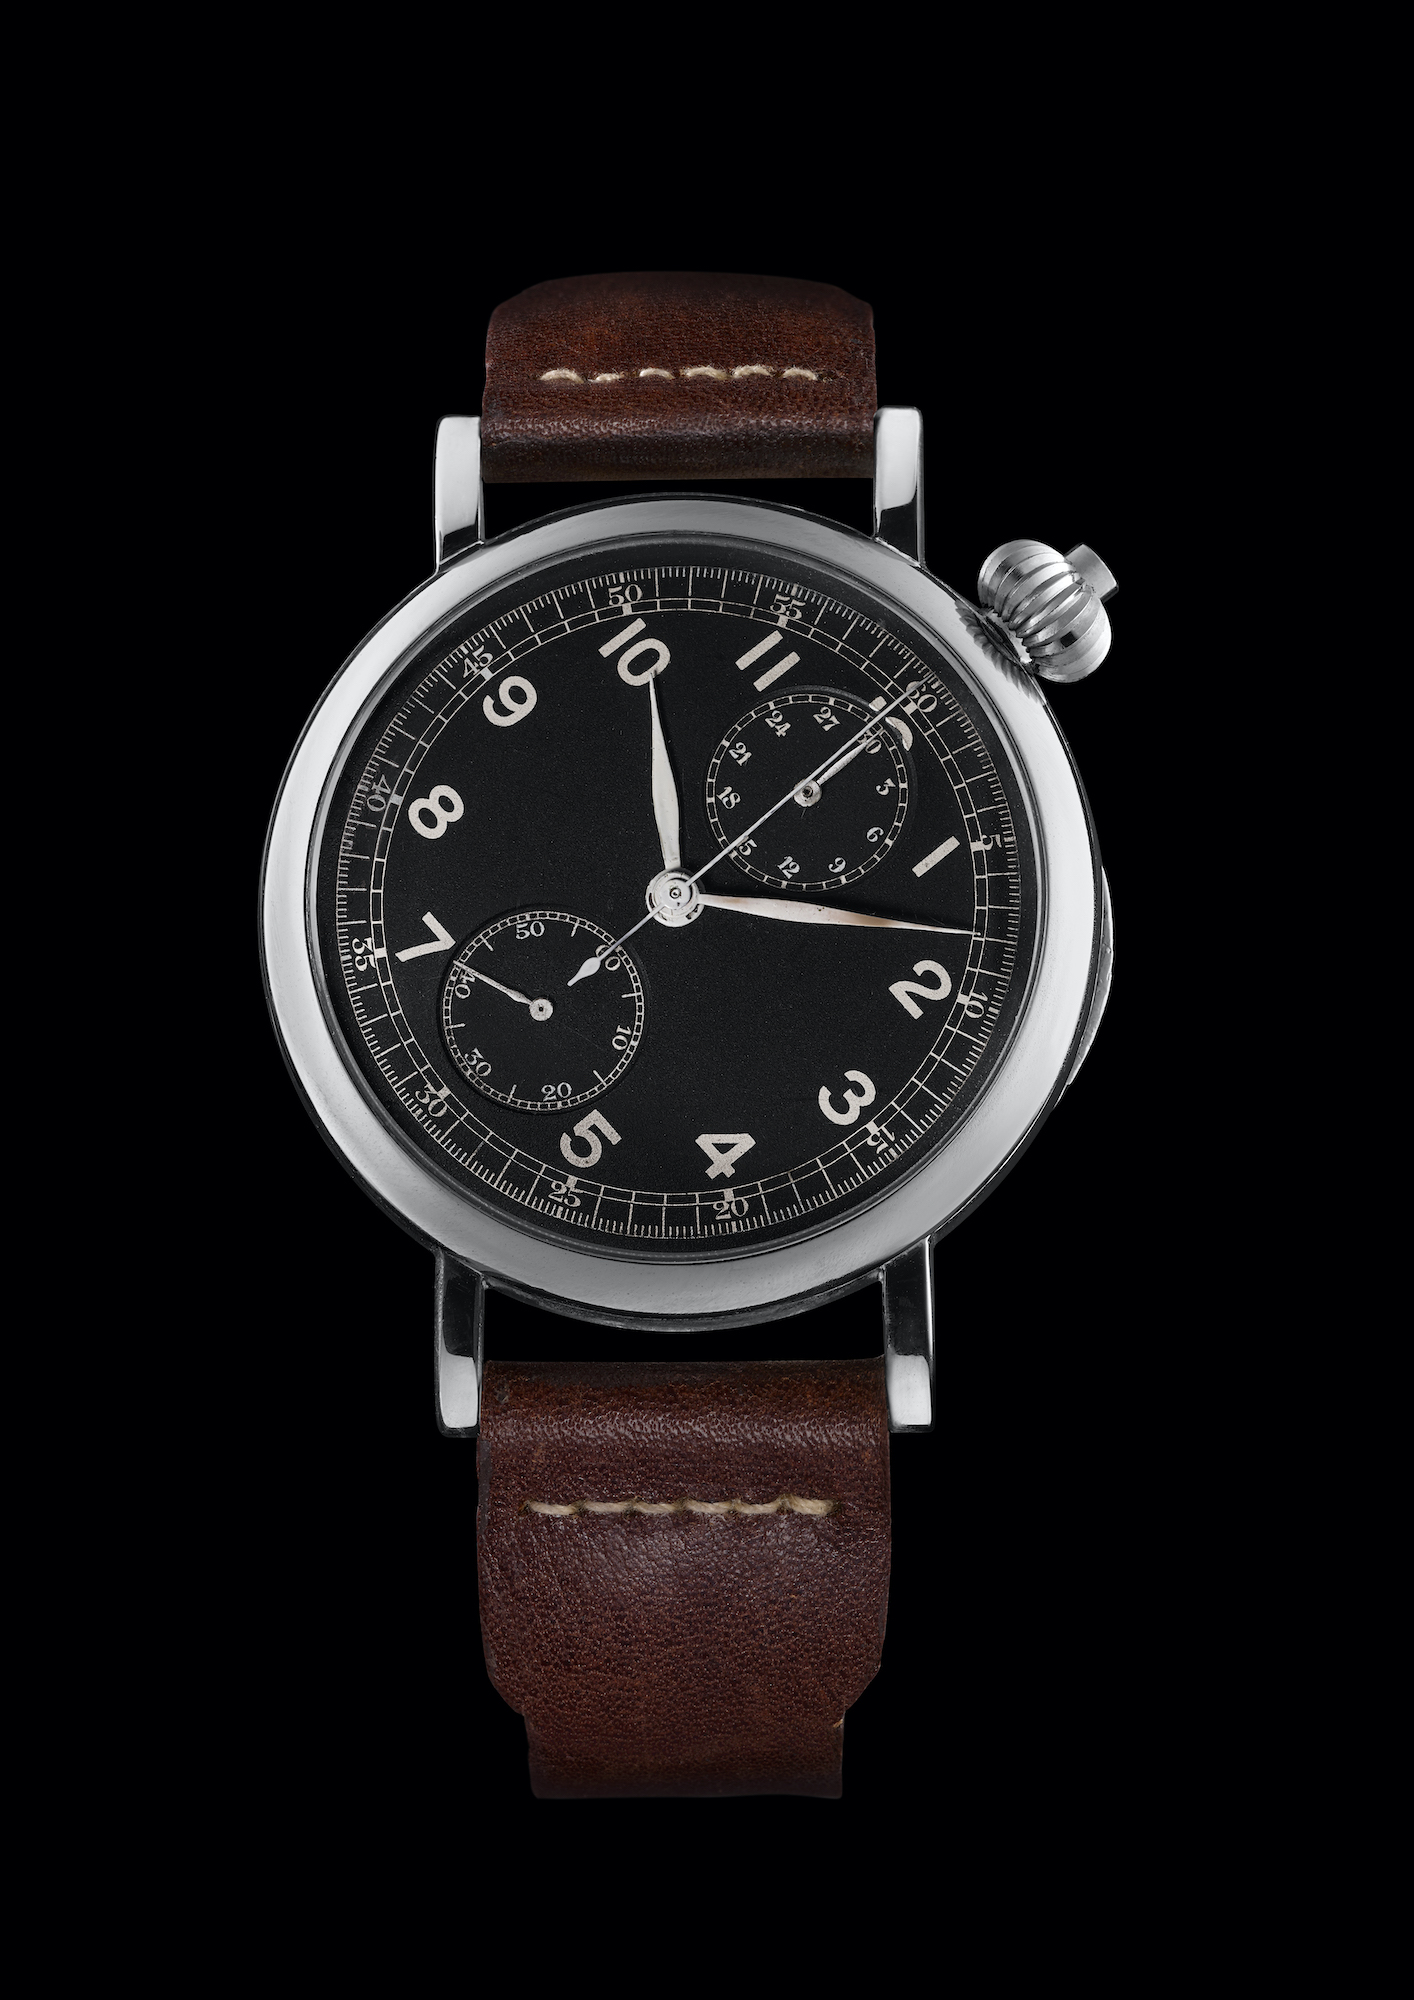 The Longines Avigation Watch A-7 1935 original